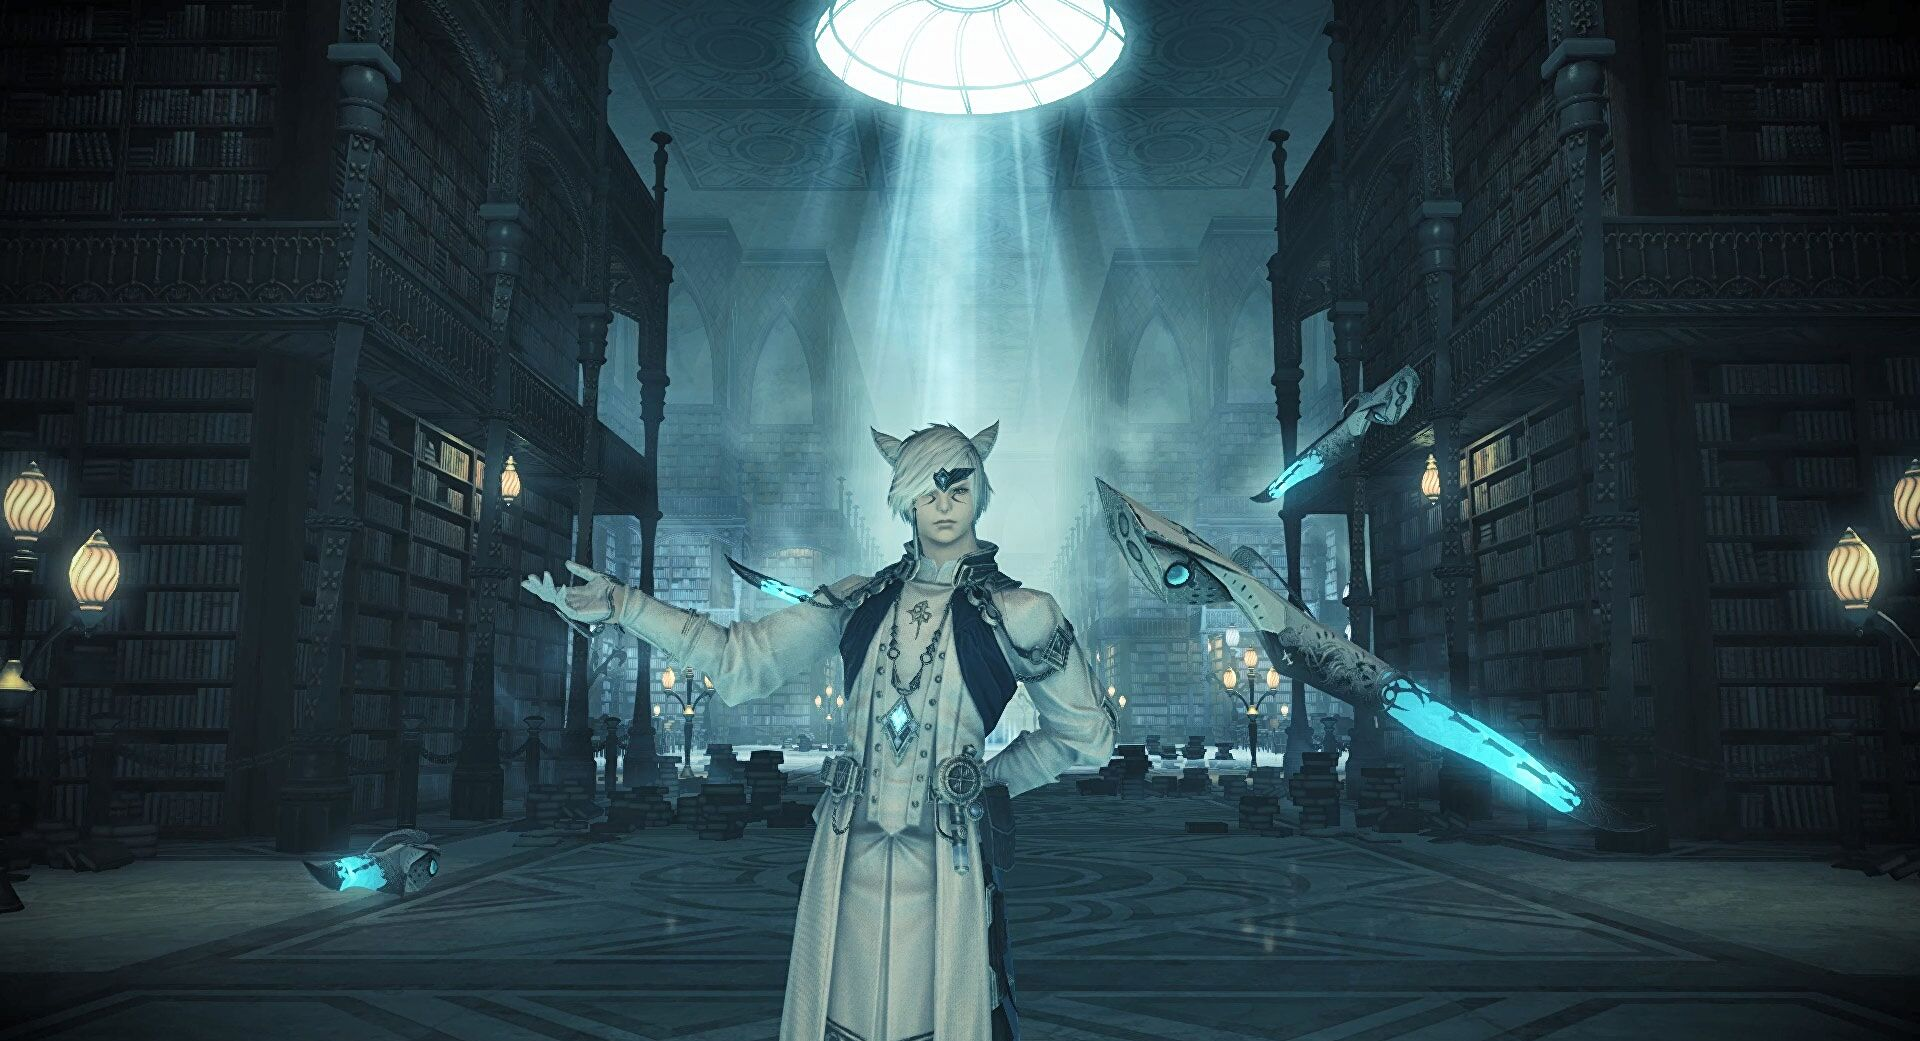 Final Fantasy 14: Endwalker arrives this autumn to end the MMO's story - Rock Paper Shotgun